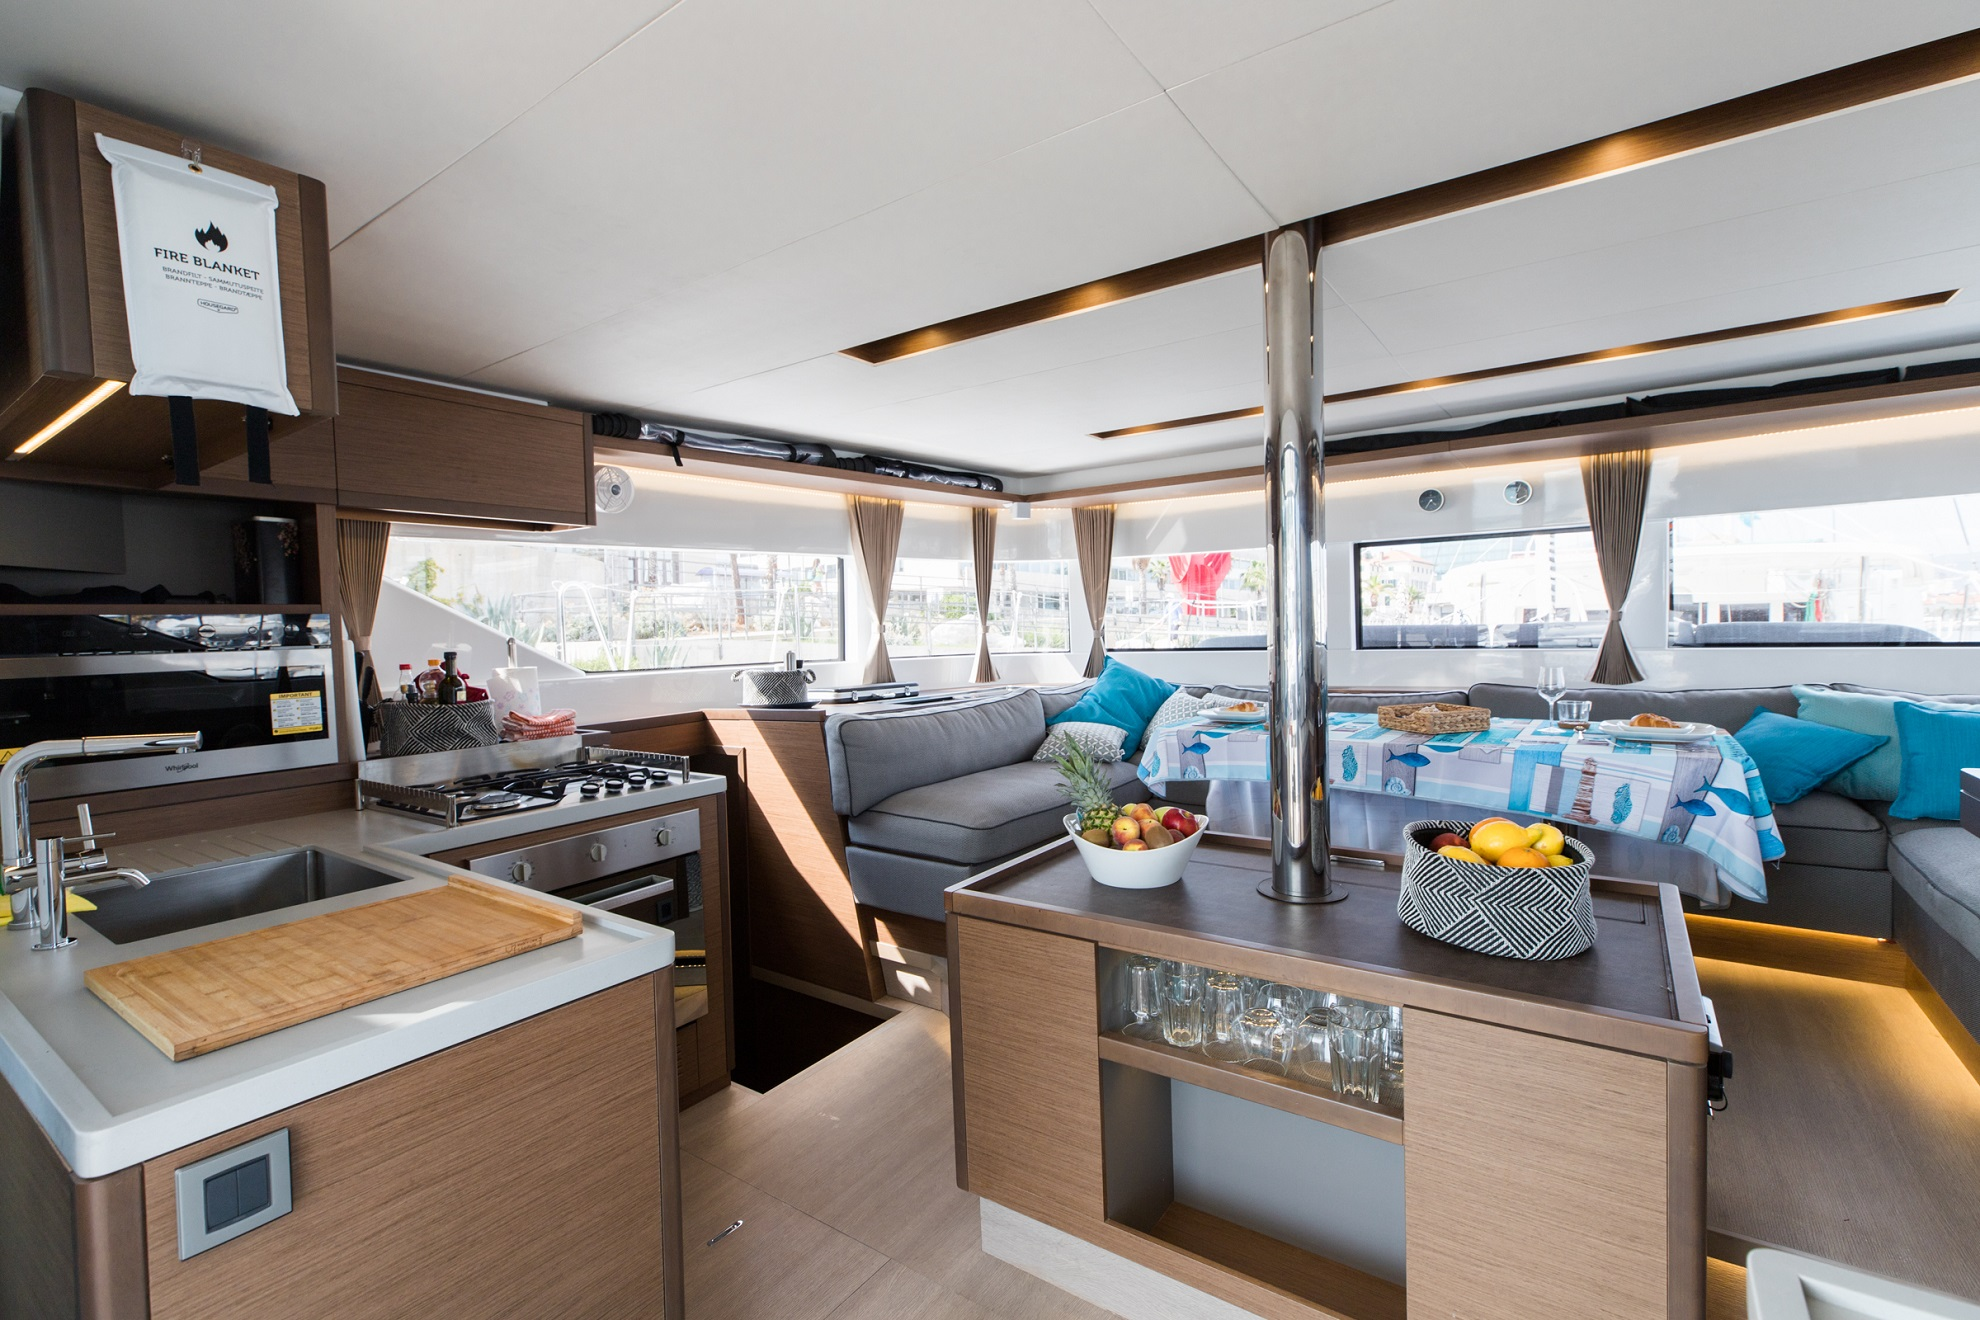 Lagoon 50 LUX elegance (2019) equipped with aircon (TWIN JOY)  - 4